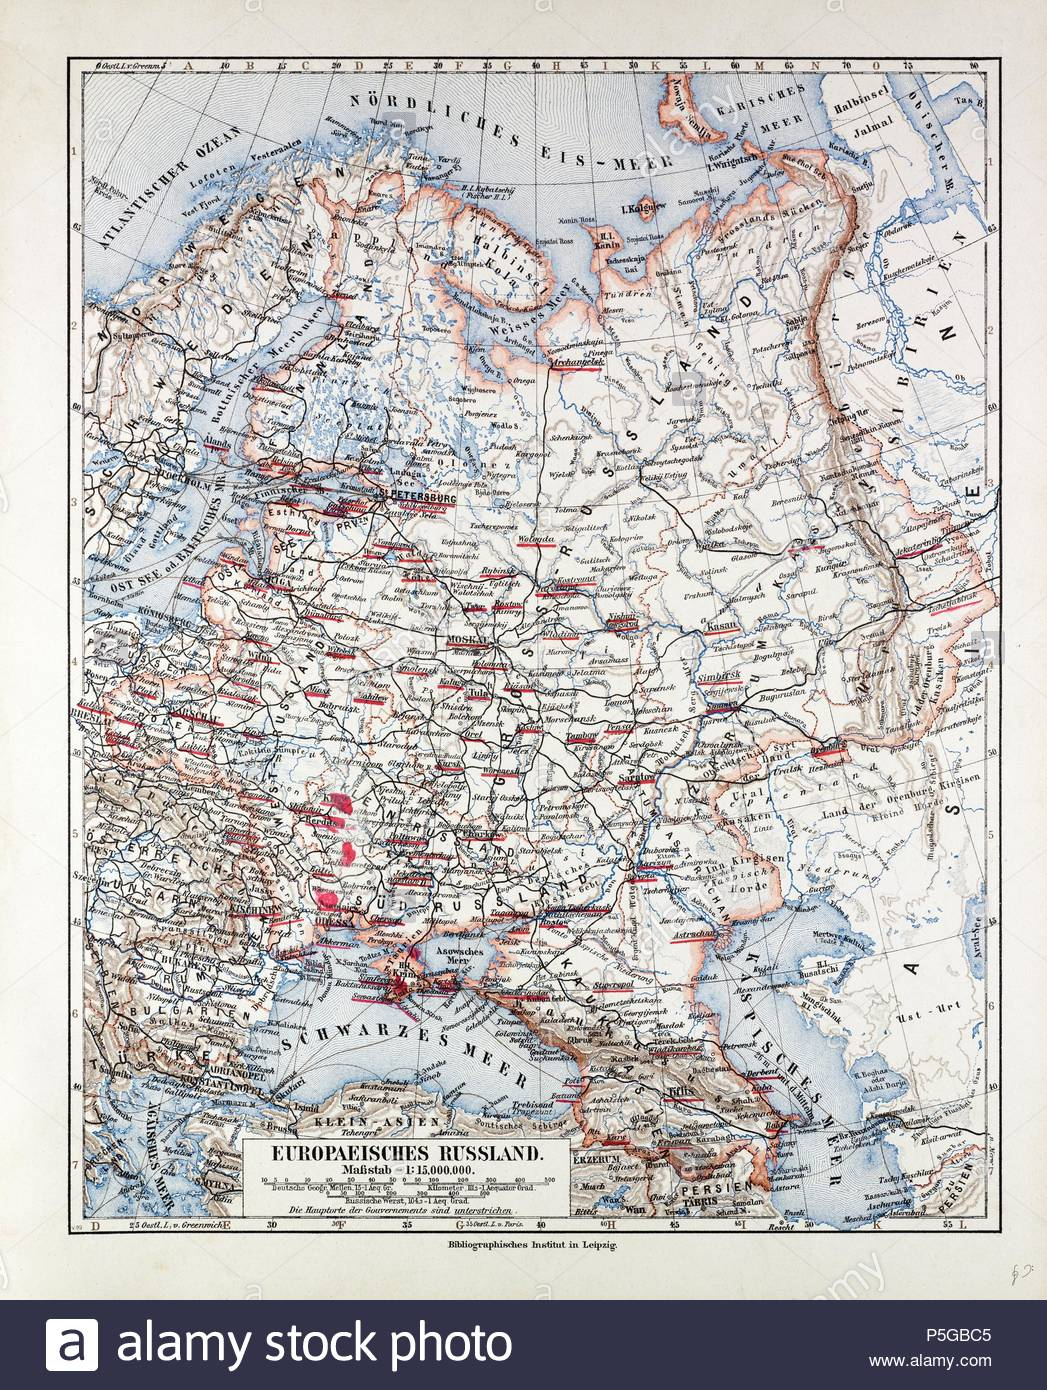 MAP OF THE EUROPEAN PART OF RUSSIA, 1899 Stock Photo: 209957893 - Alamy